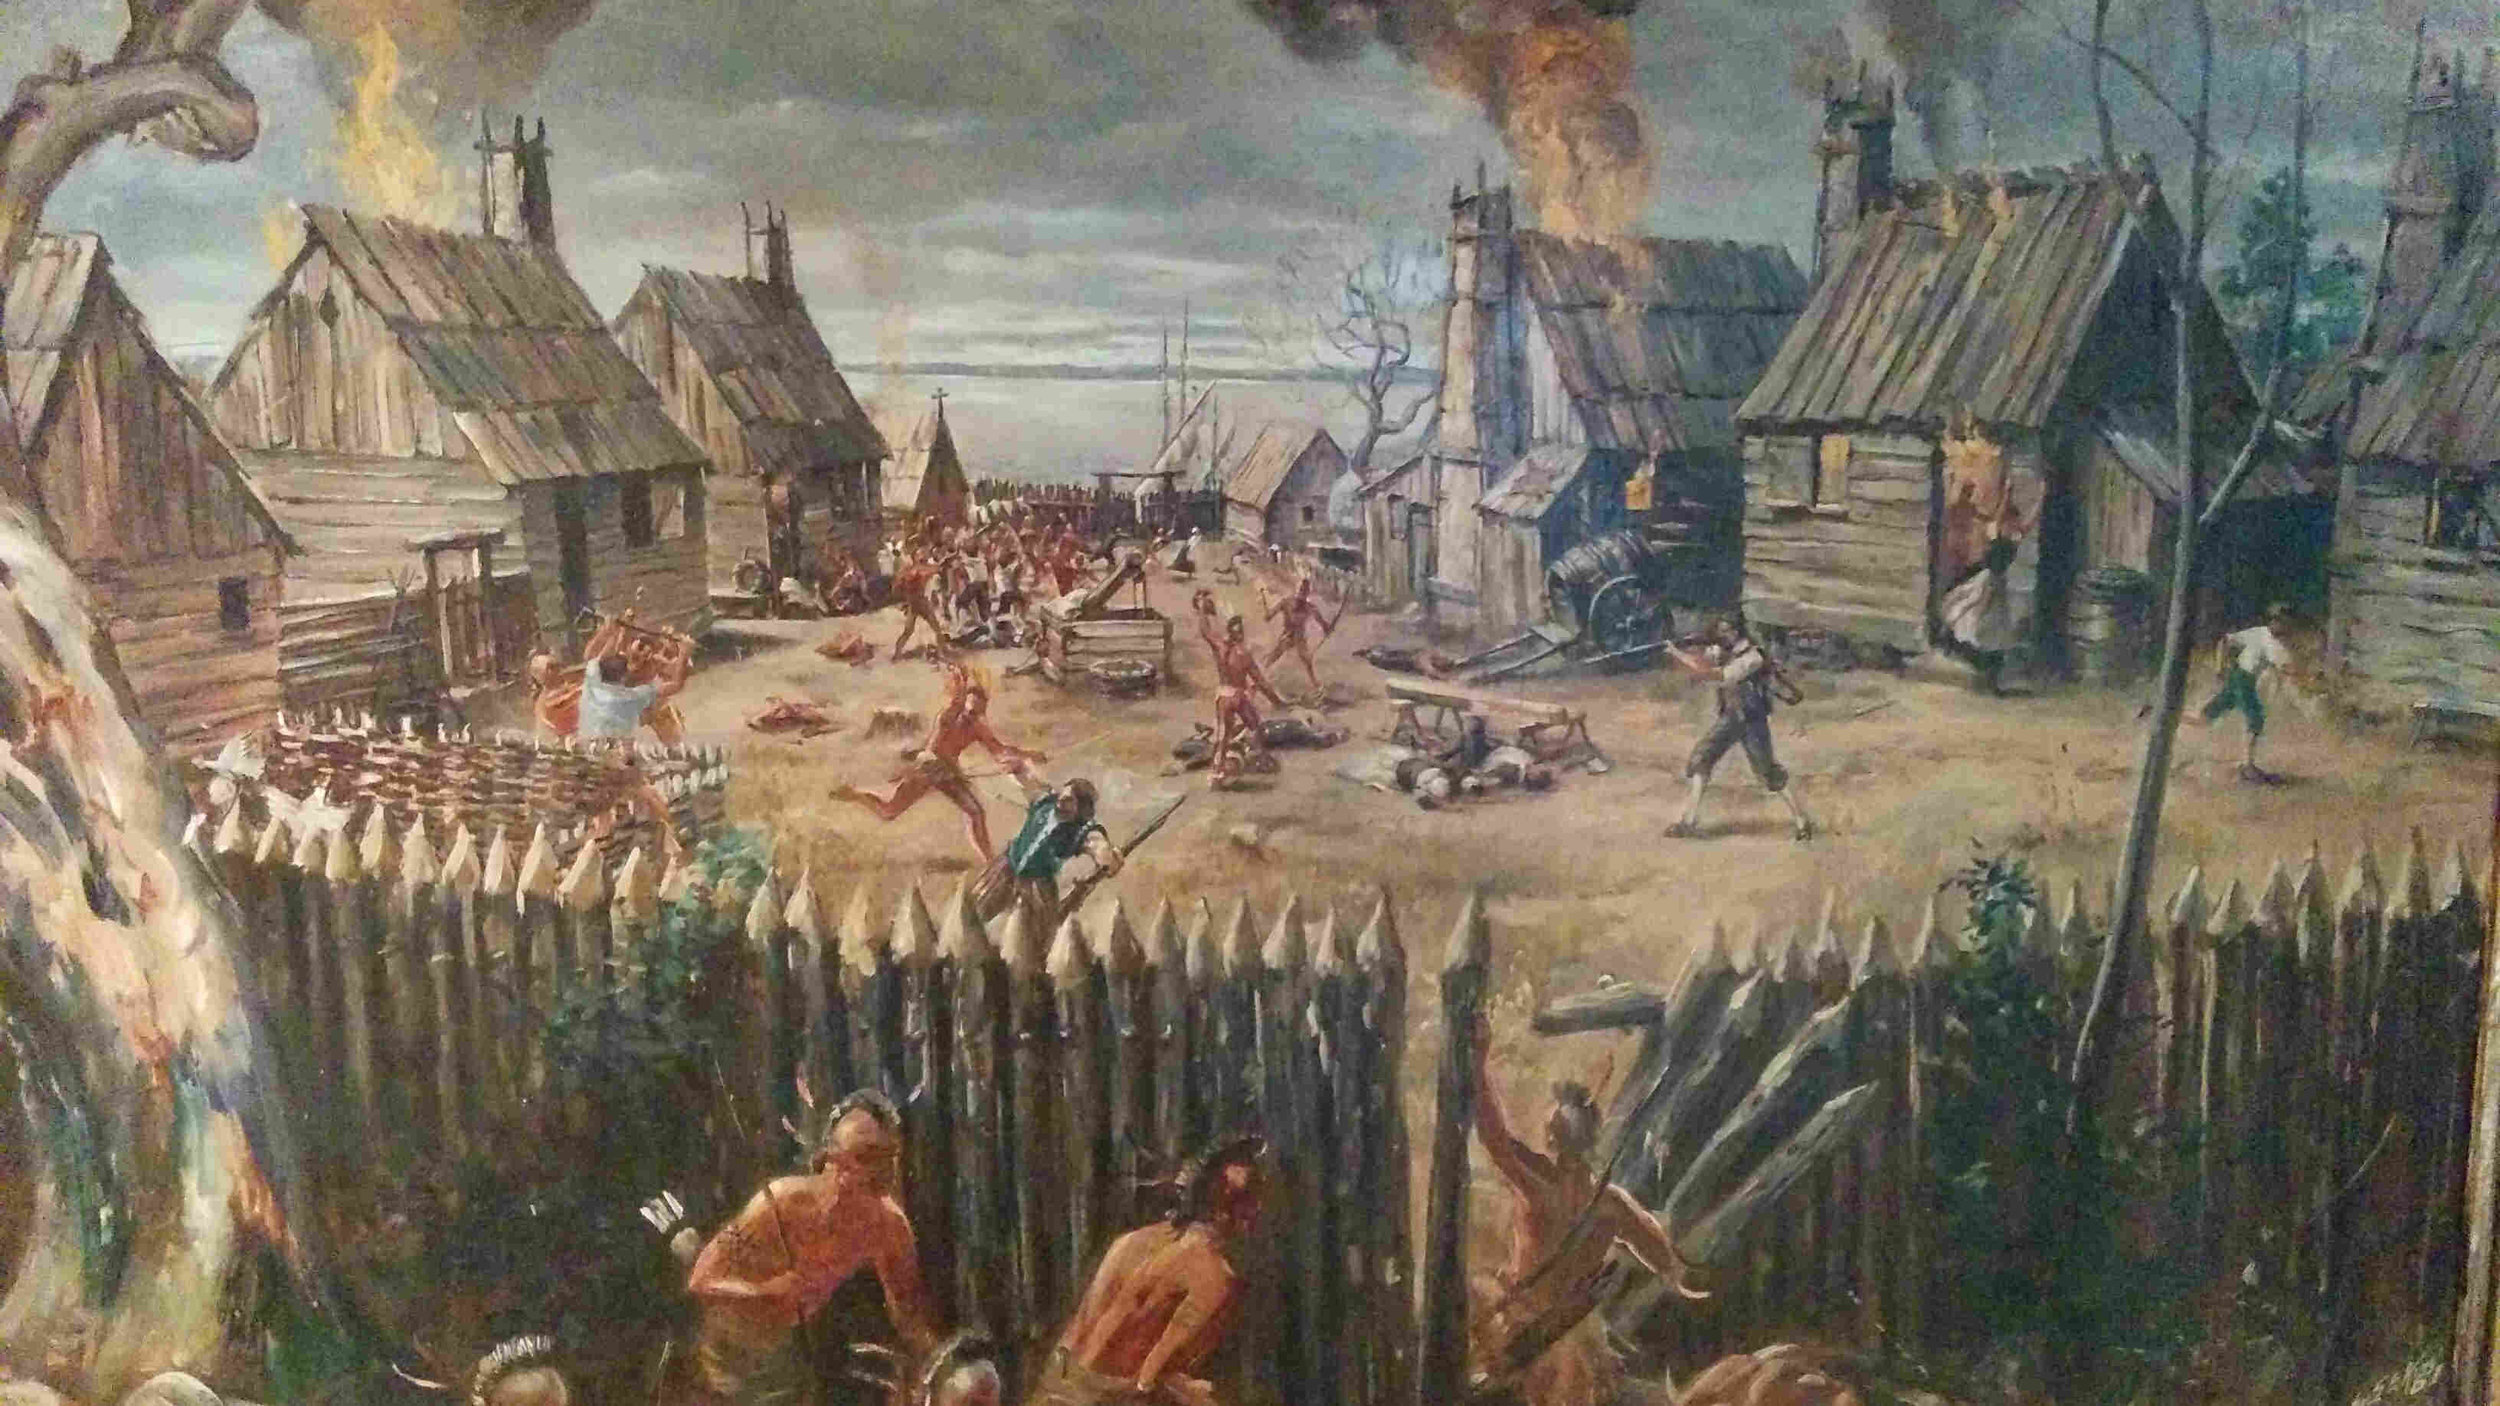 Indian Massacre of 1622 (Reminds you of something from Parks and Recreation doesn't it)